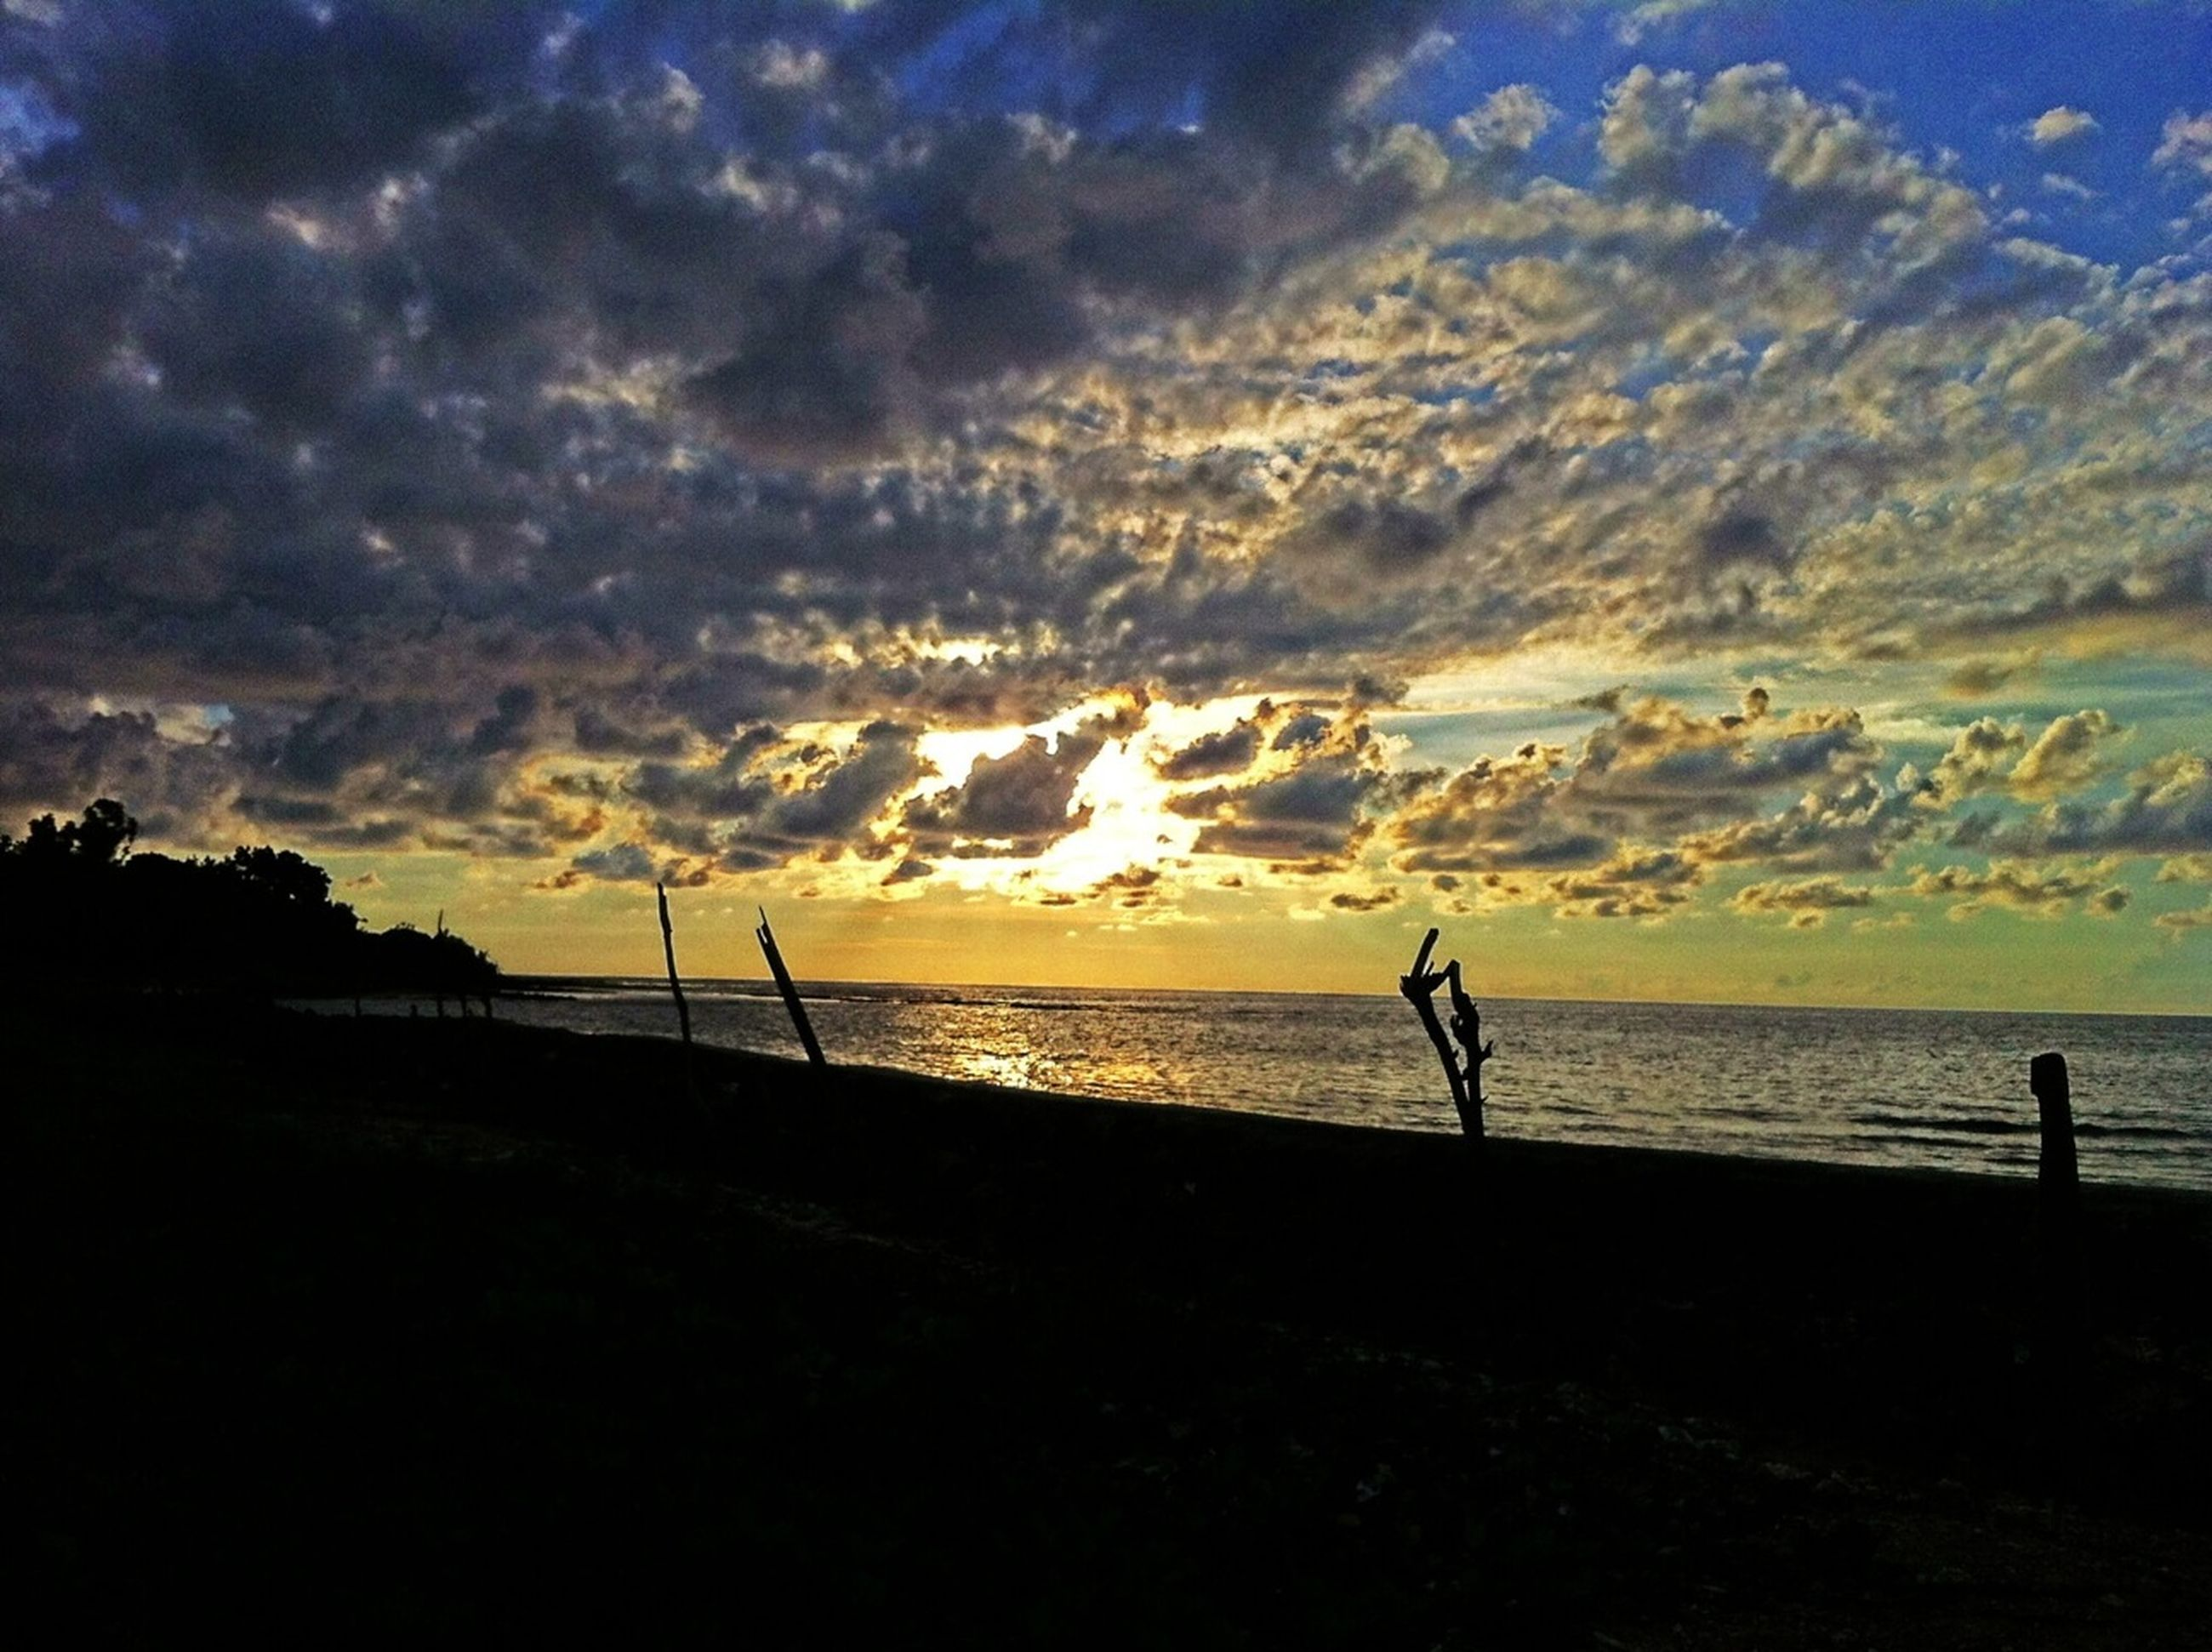 silhouette, sea, sky, water, sunset, scenics, tranquil scene, horizon over water, tranquility, beauty in nature, beach, cloud - sky, nature, idyllic, shore, cloud, dramatic sky, dusk, calm, cloudy